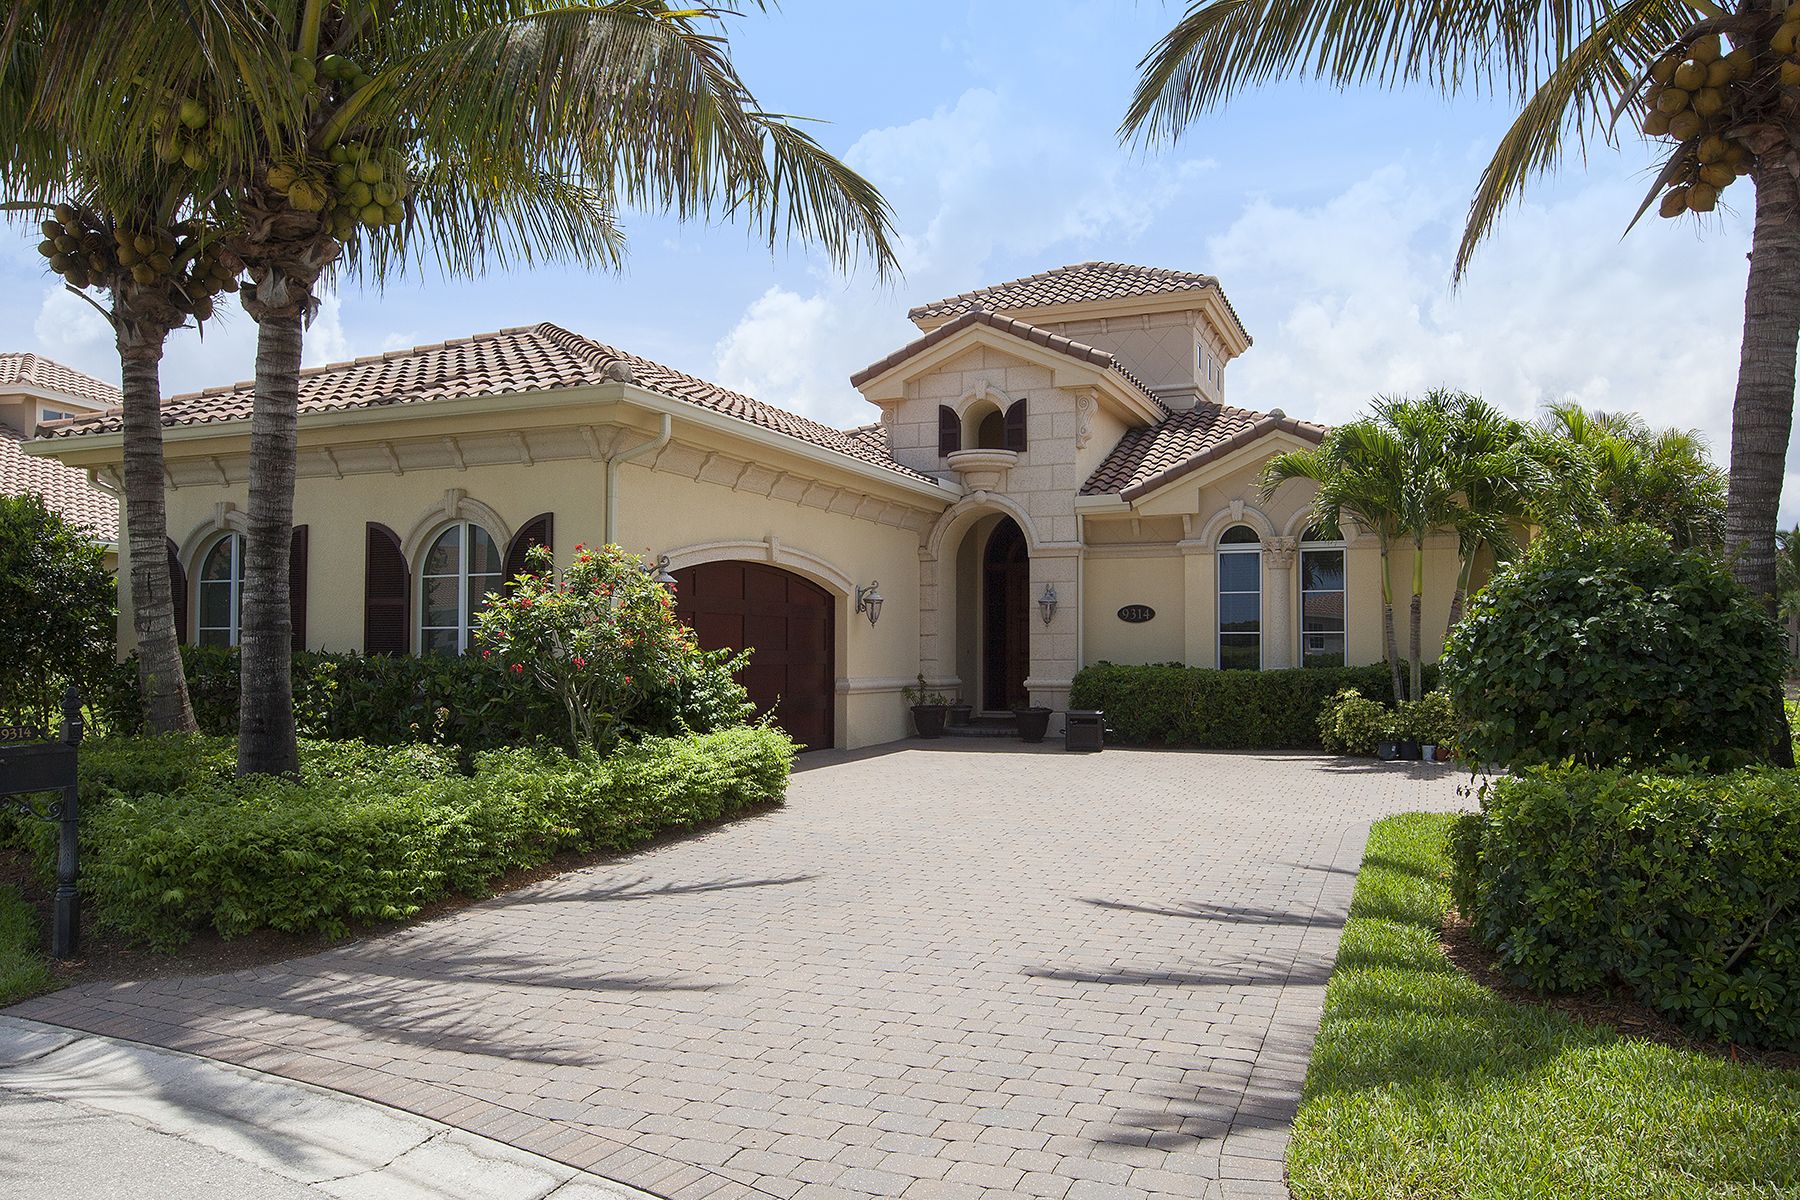 Single Family Home for Sale at FIDDLERS CREEK 9314 Chiasso Cove Ct, Naples, Florida 34114 United States